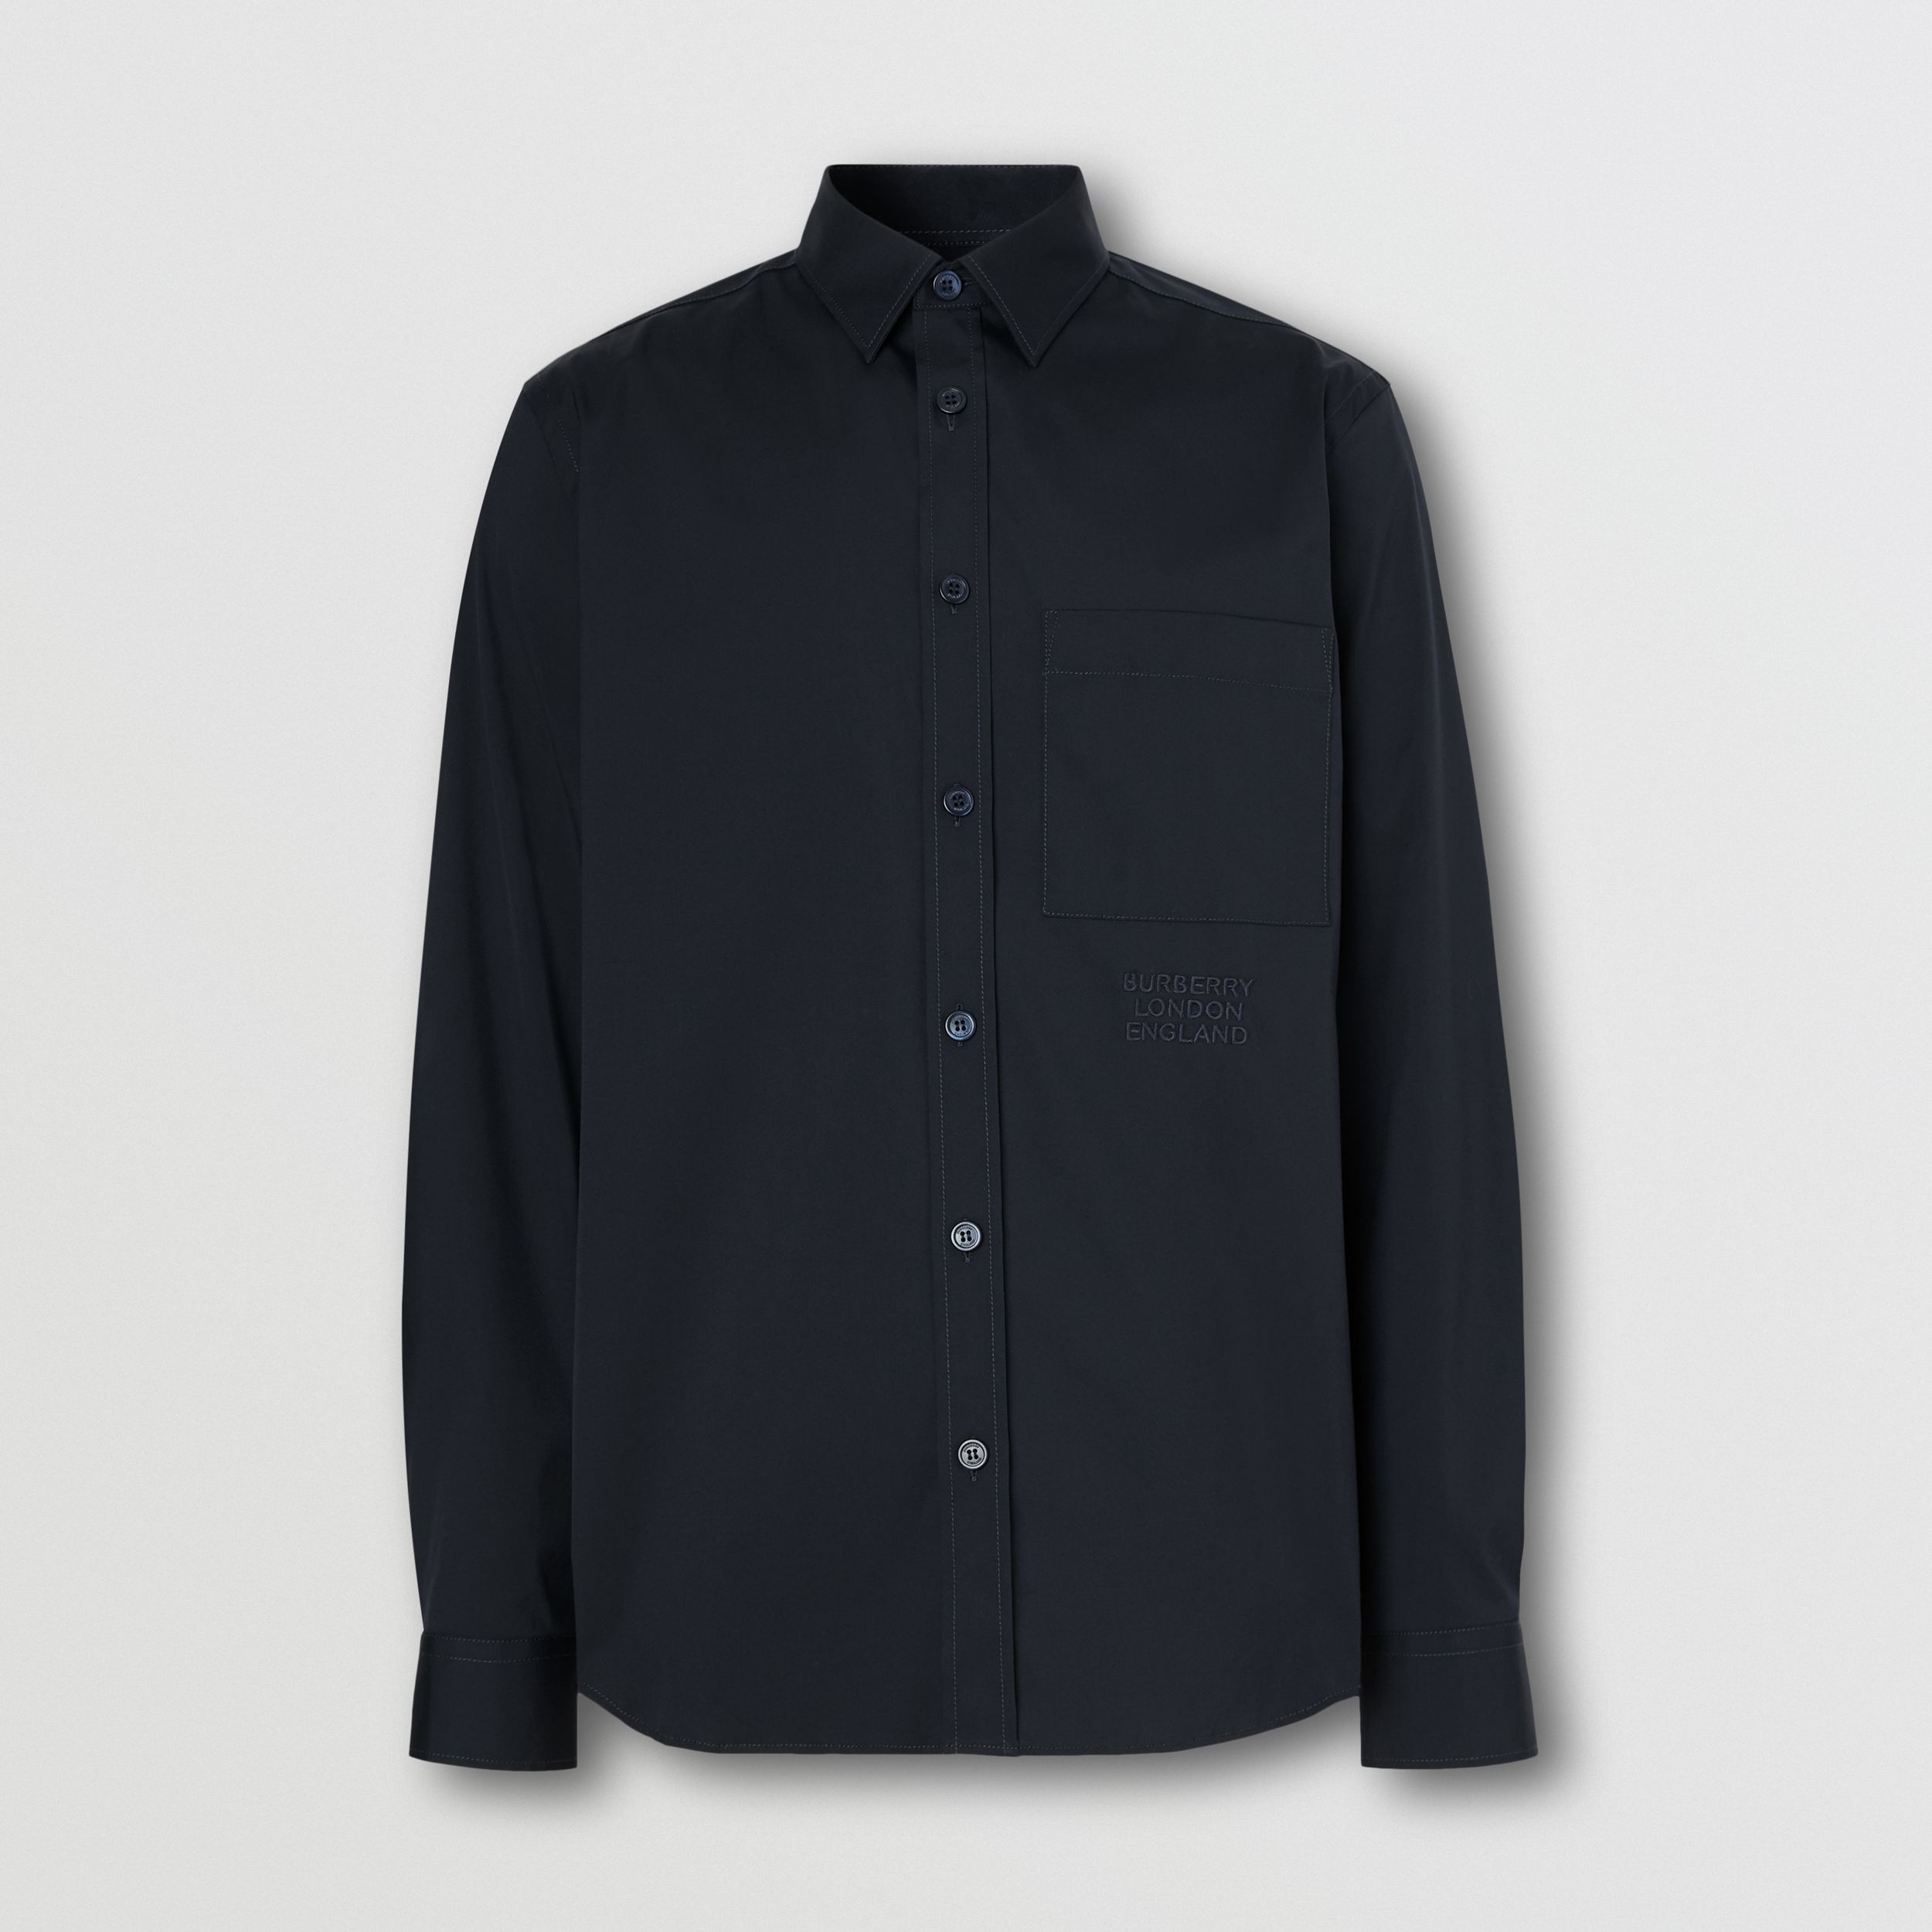 Embroidered Logo Cotton Blend Shirt in Navy - Men | Burberry - 4